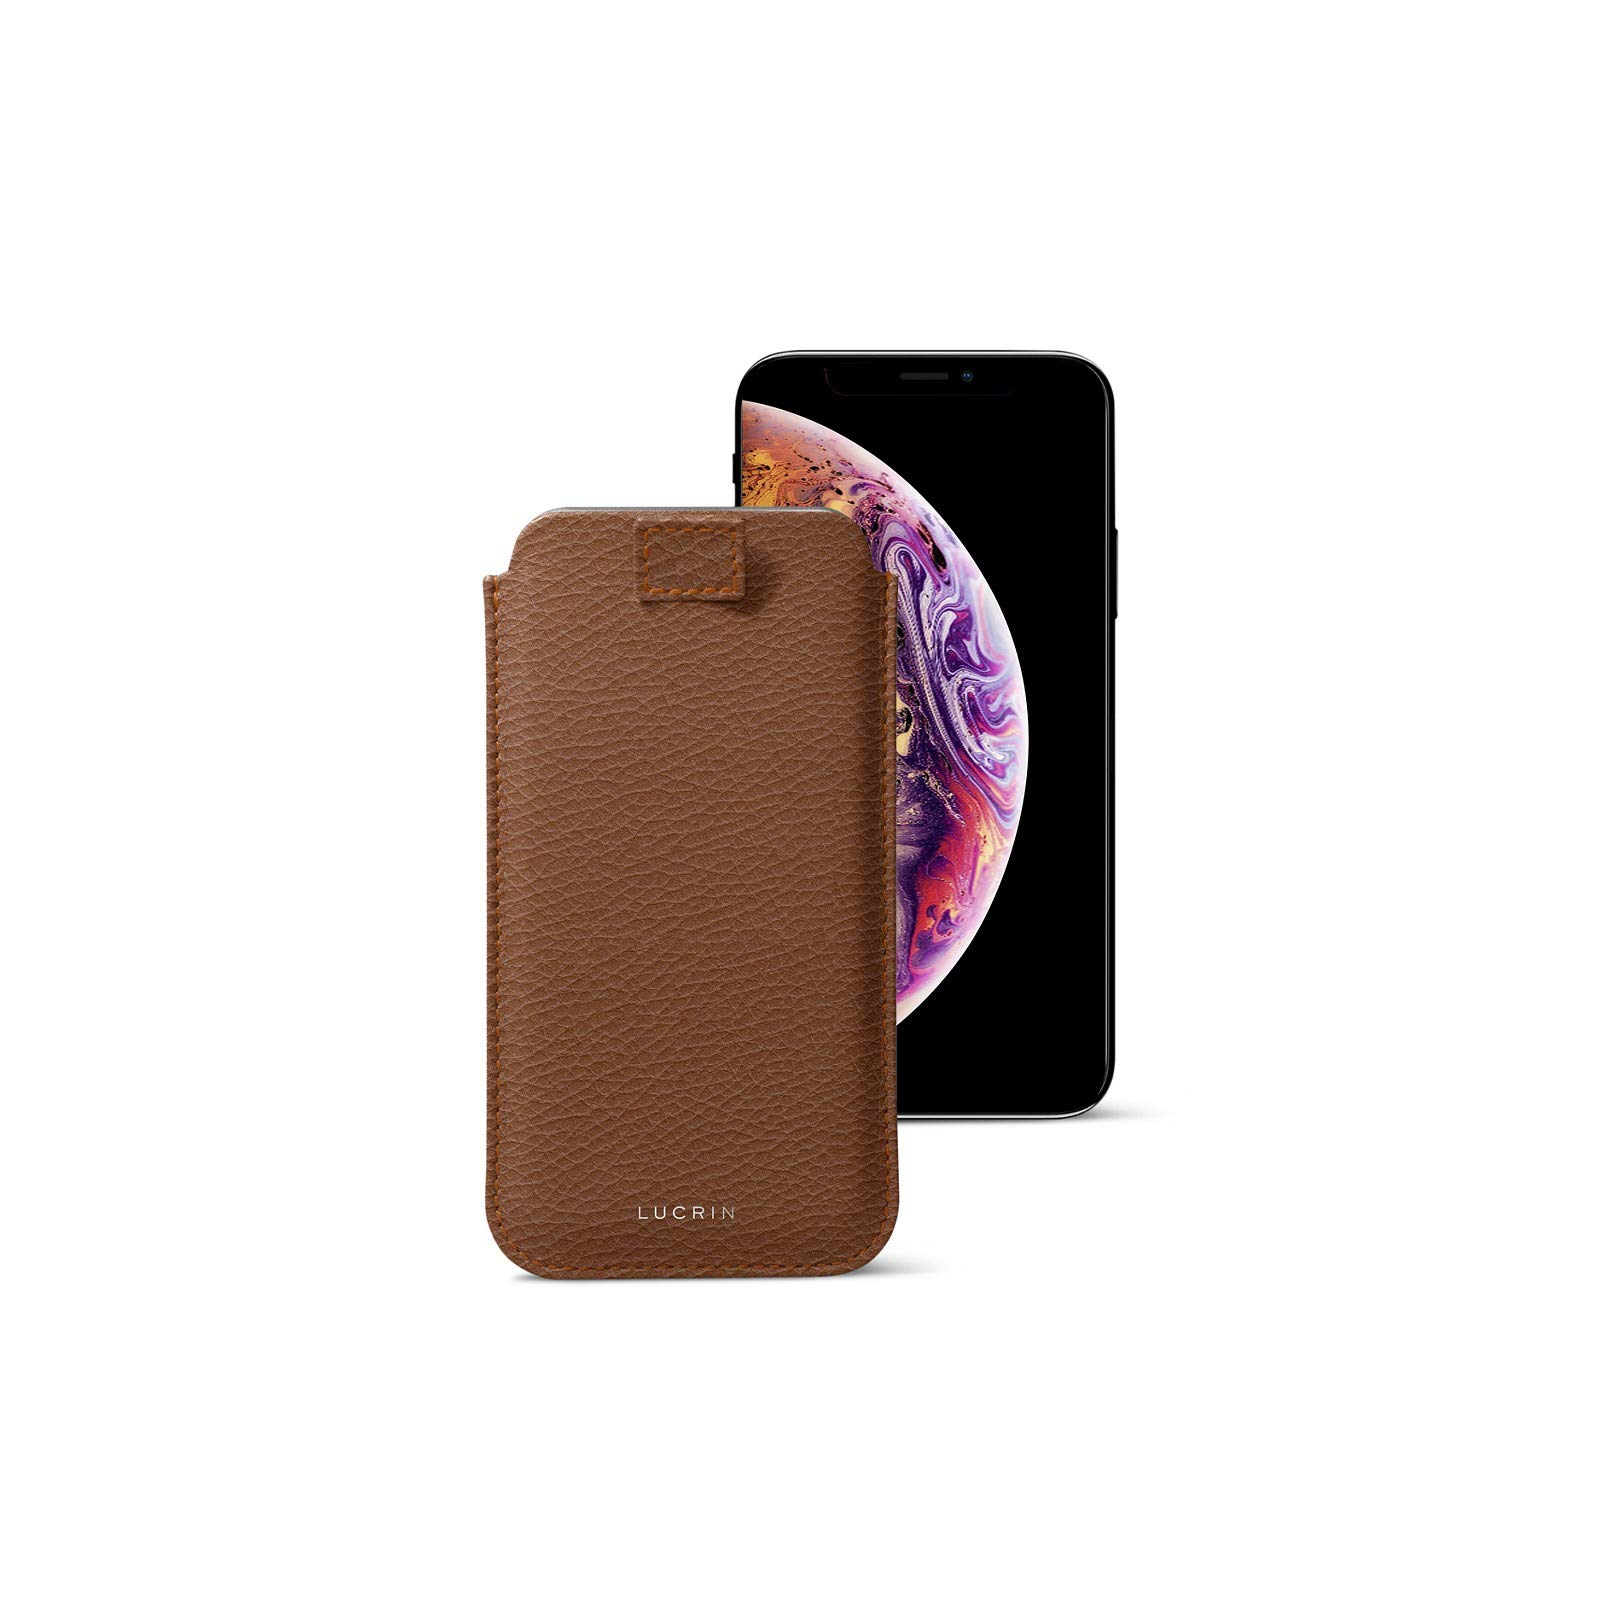 Lucrin - Pull Tab Slim Sleeve Case Compatible with iPhone Xs/iPhone X and Wireless Charging - Tan - Granulated Leather by Lucrin